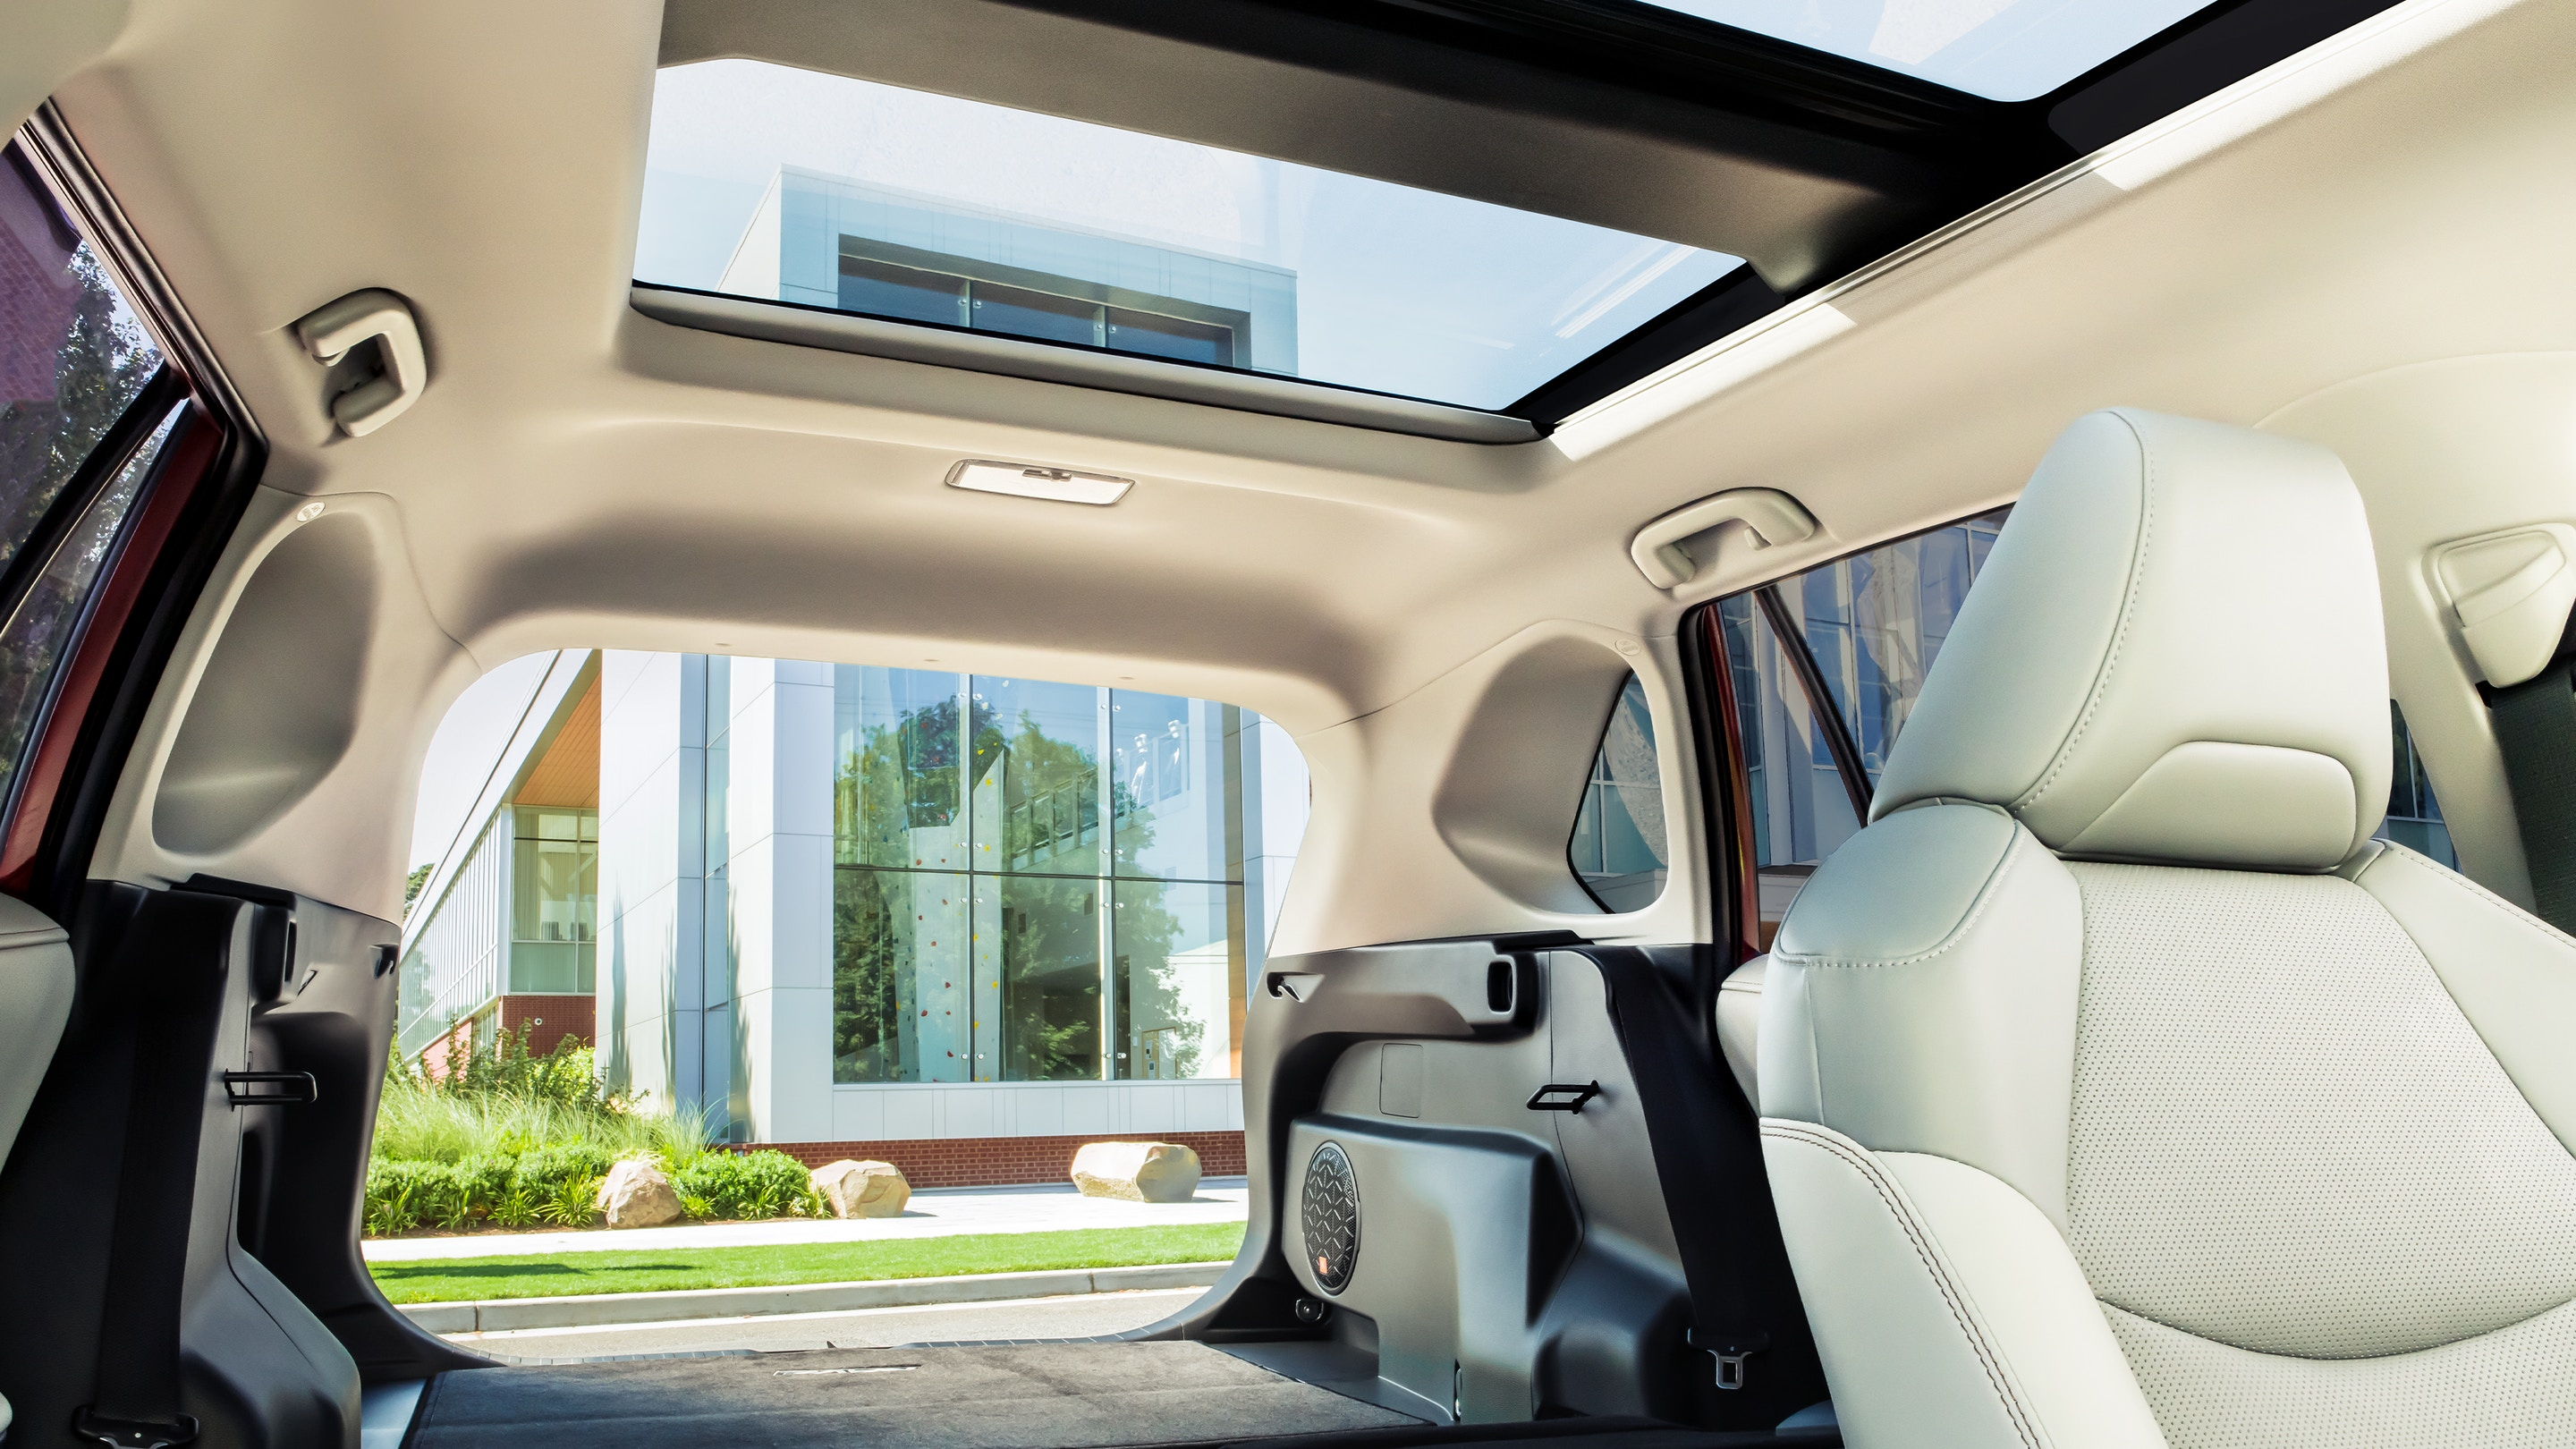 There's Plenty of Room For All Your Items in the RAV4!